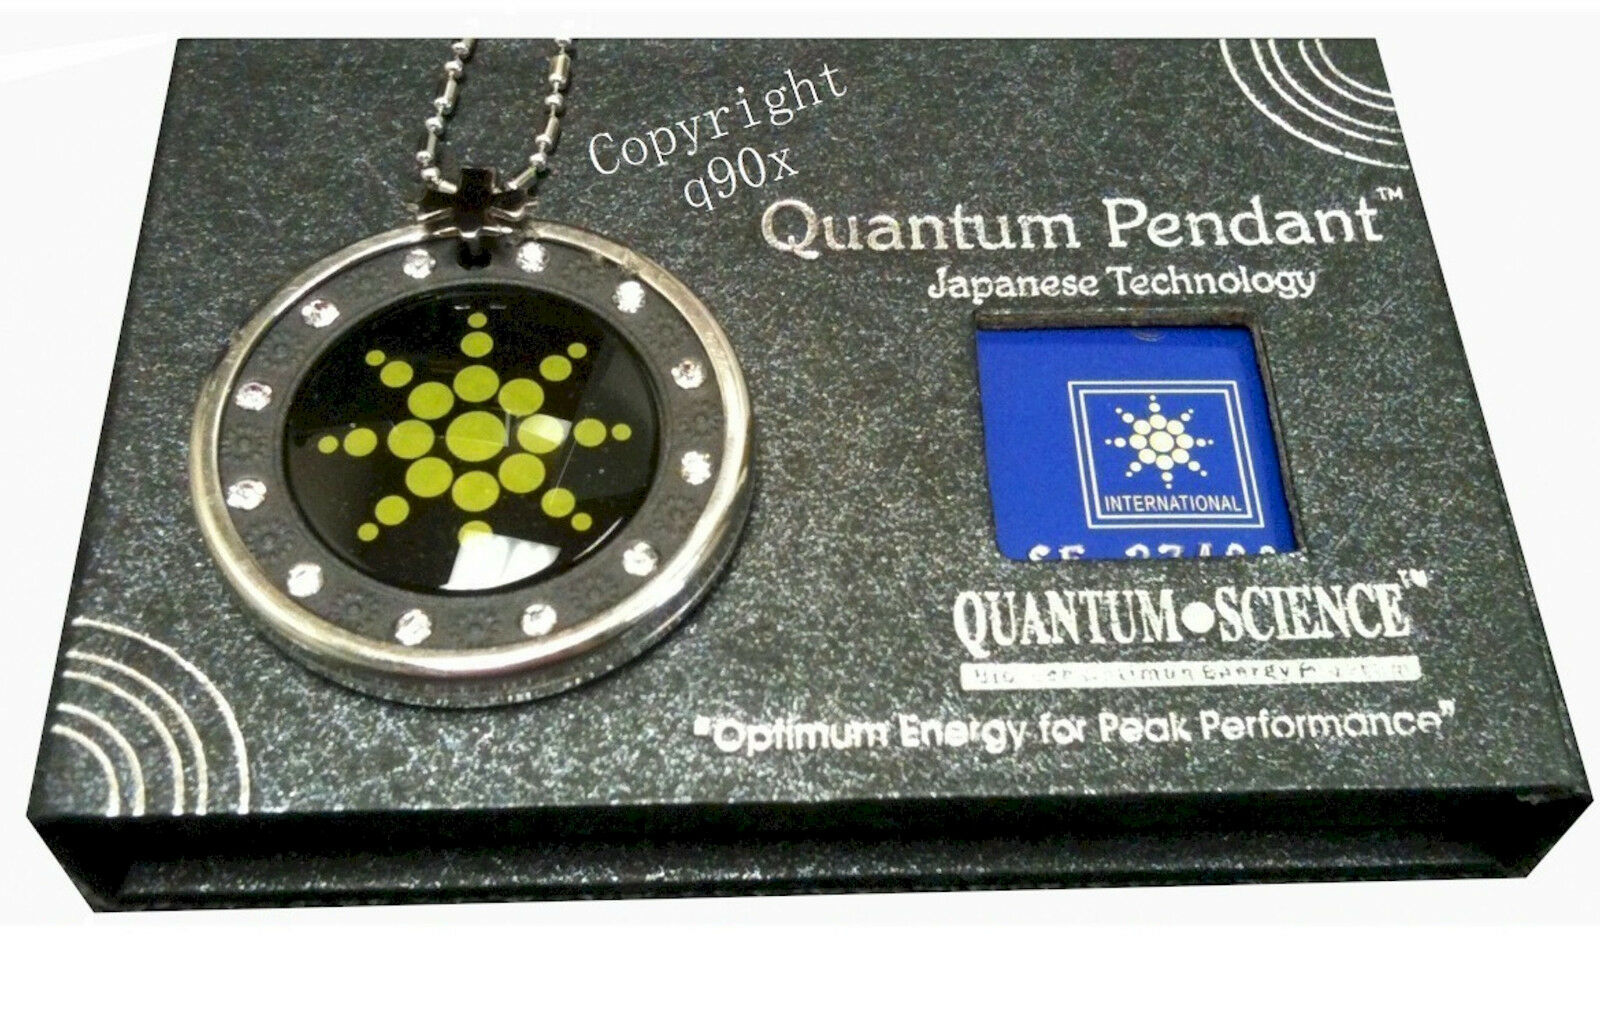 New scalar energy pendant quantum nano science japanese technology does not apply aloadofball Choice Image